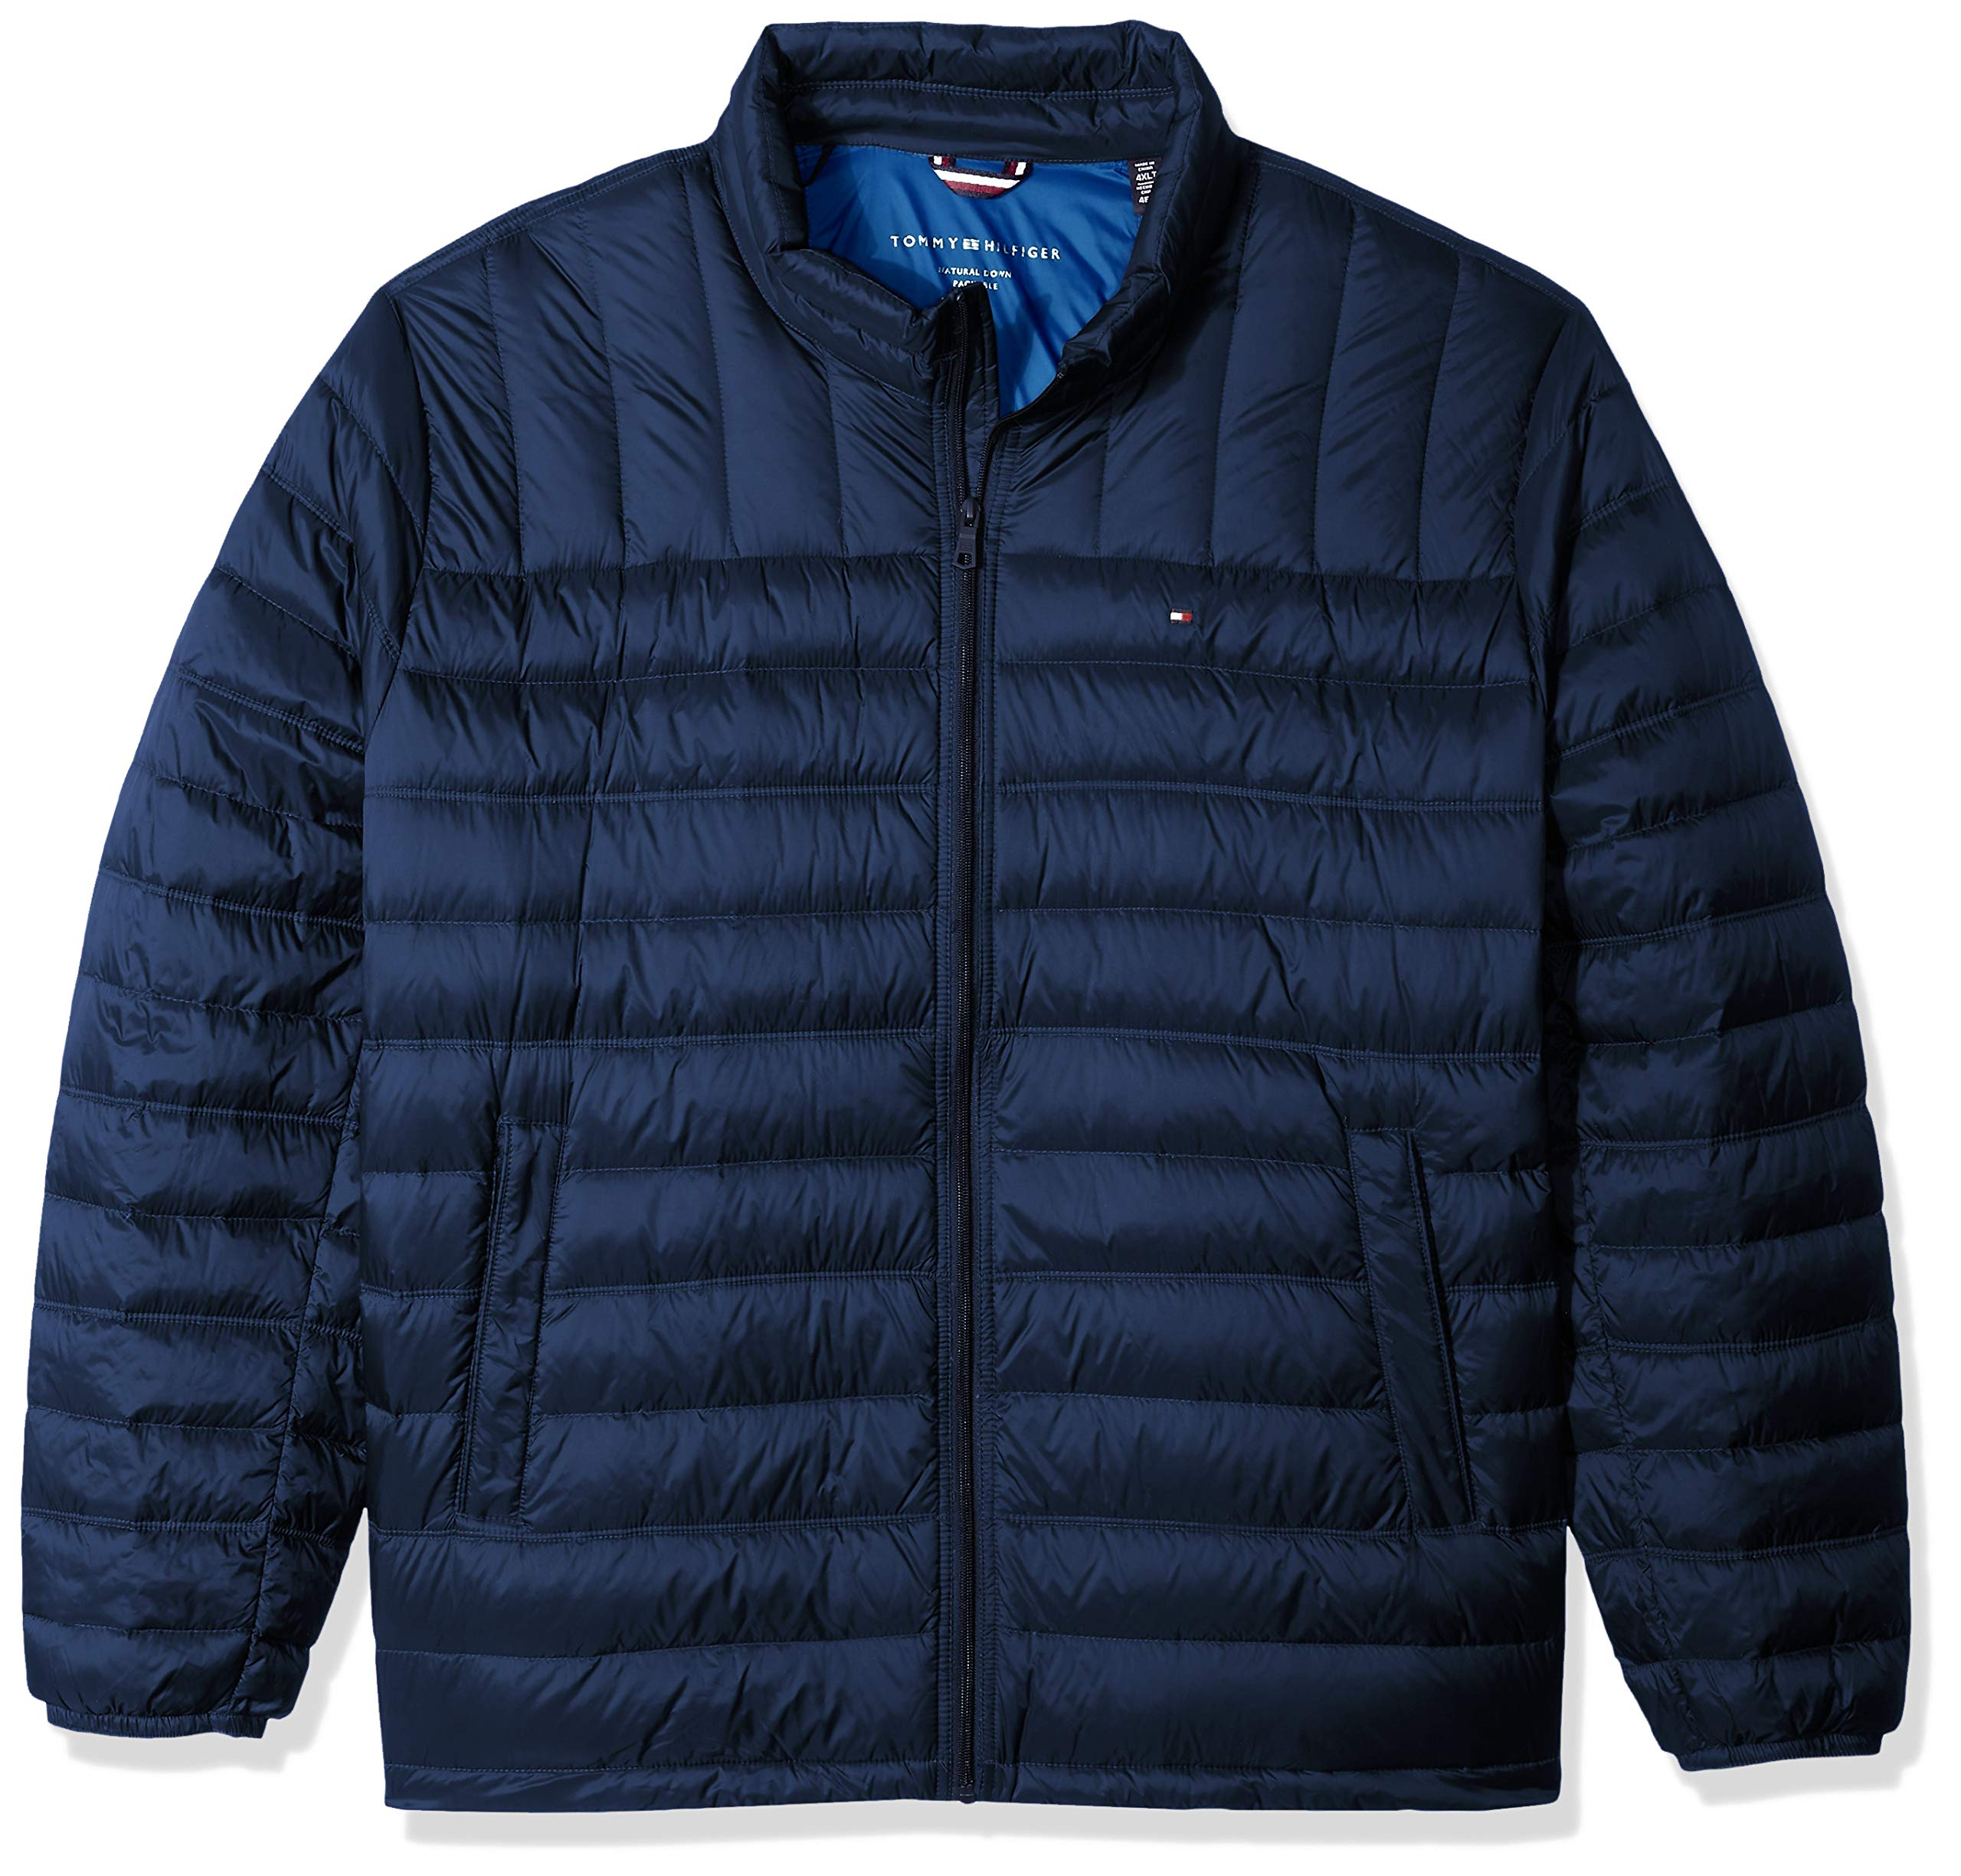 Tommy Hilfiger Men's Packable Down Jacket (Regular and Big & Tall Sizes), New Navy, LONG TALL